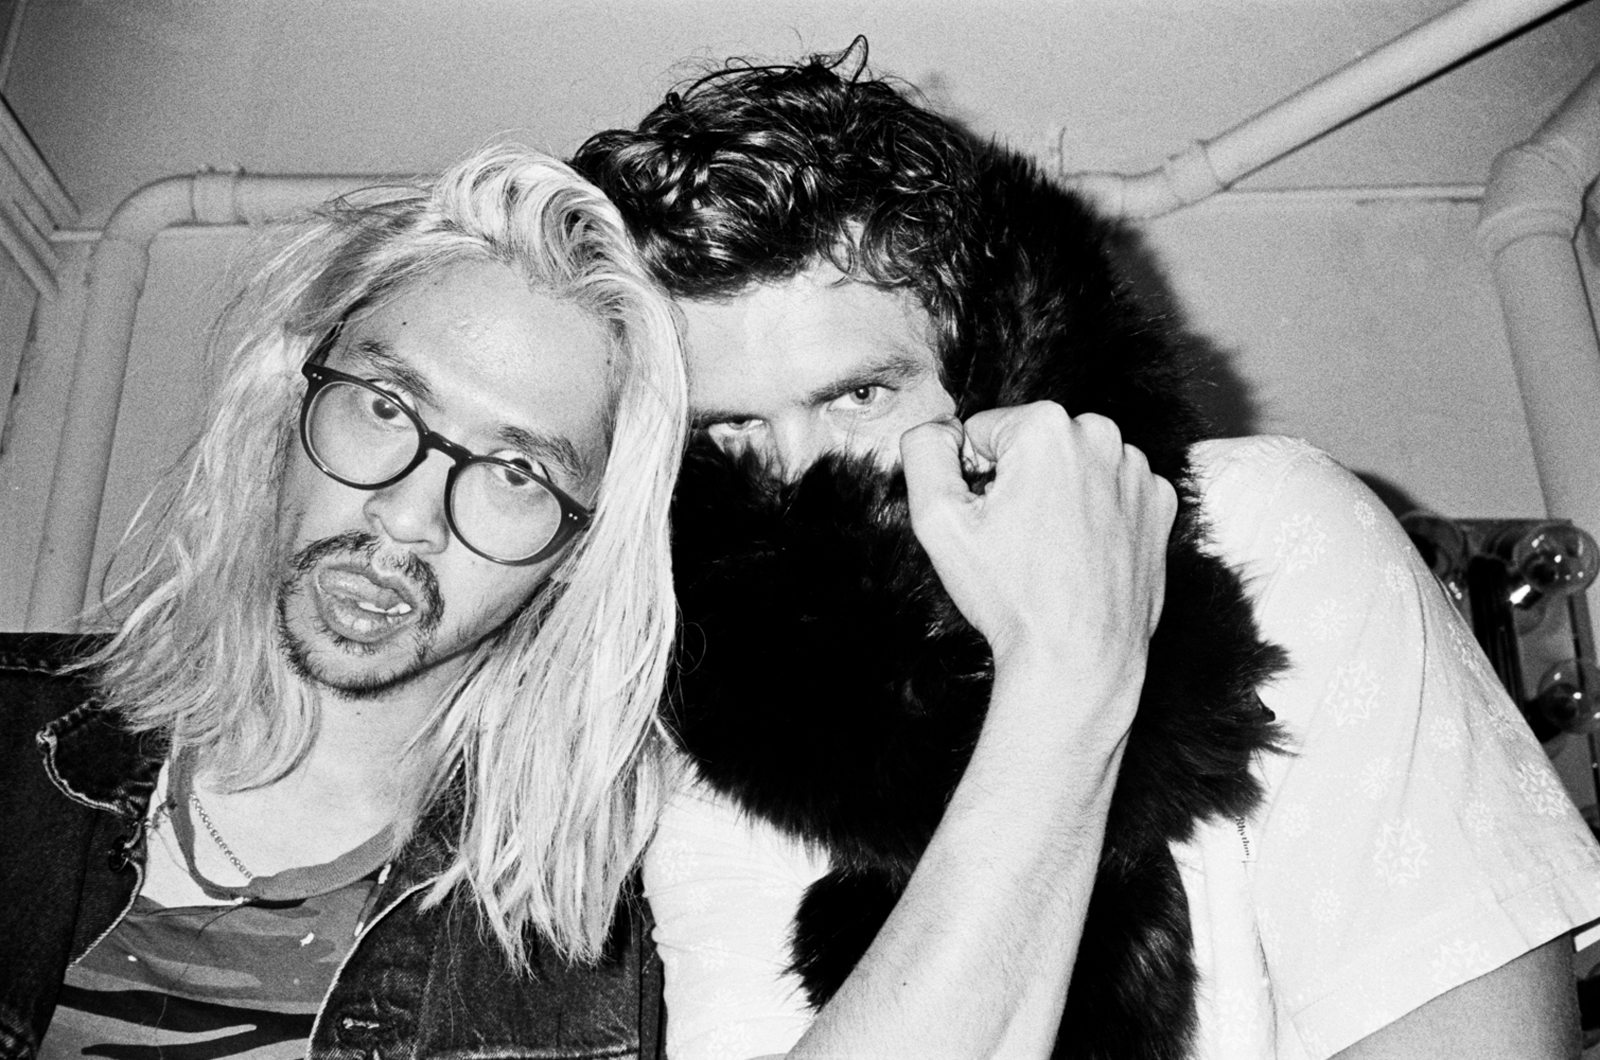 Animals_Mag_Issue2_LaunchParty_10_8_16_KealanShilling_010.jpg